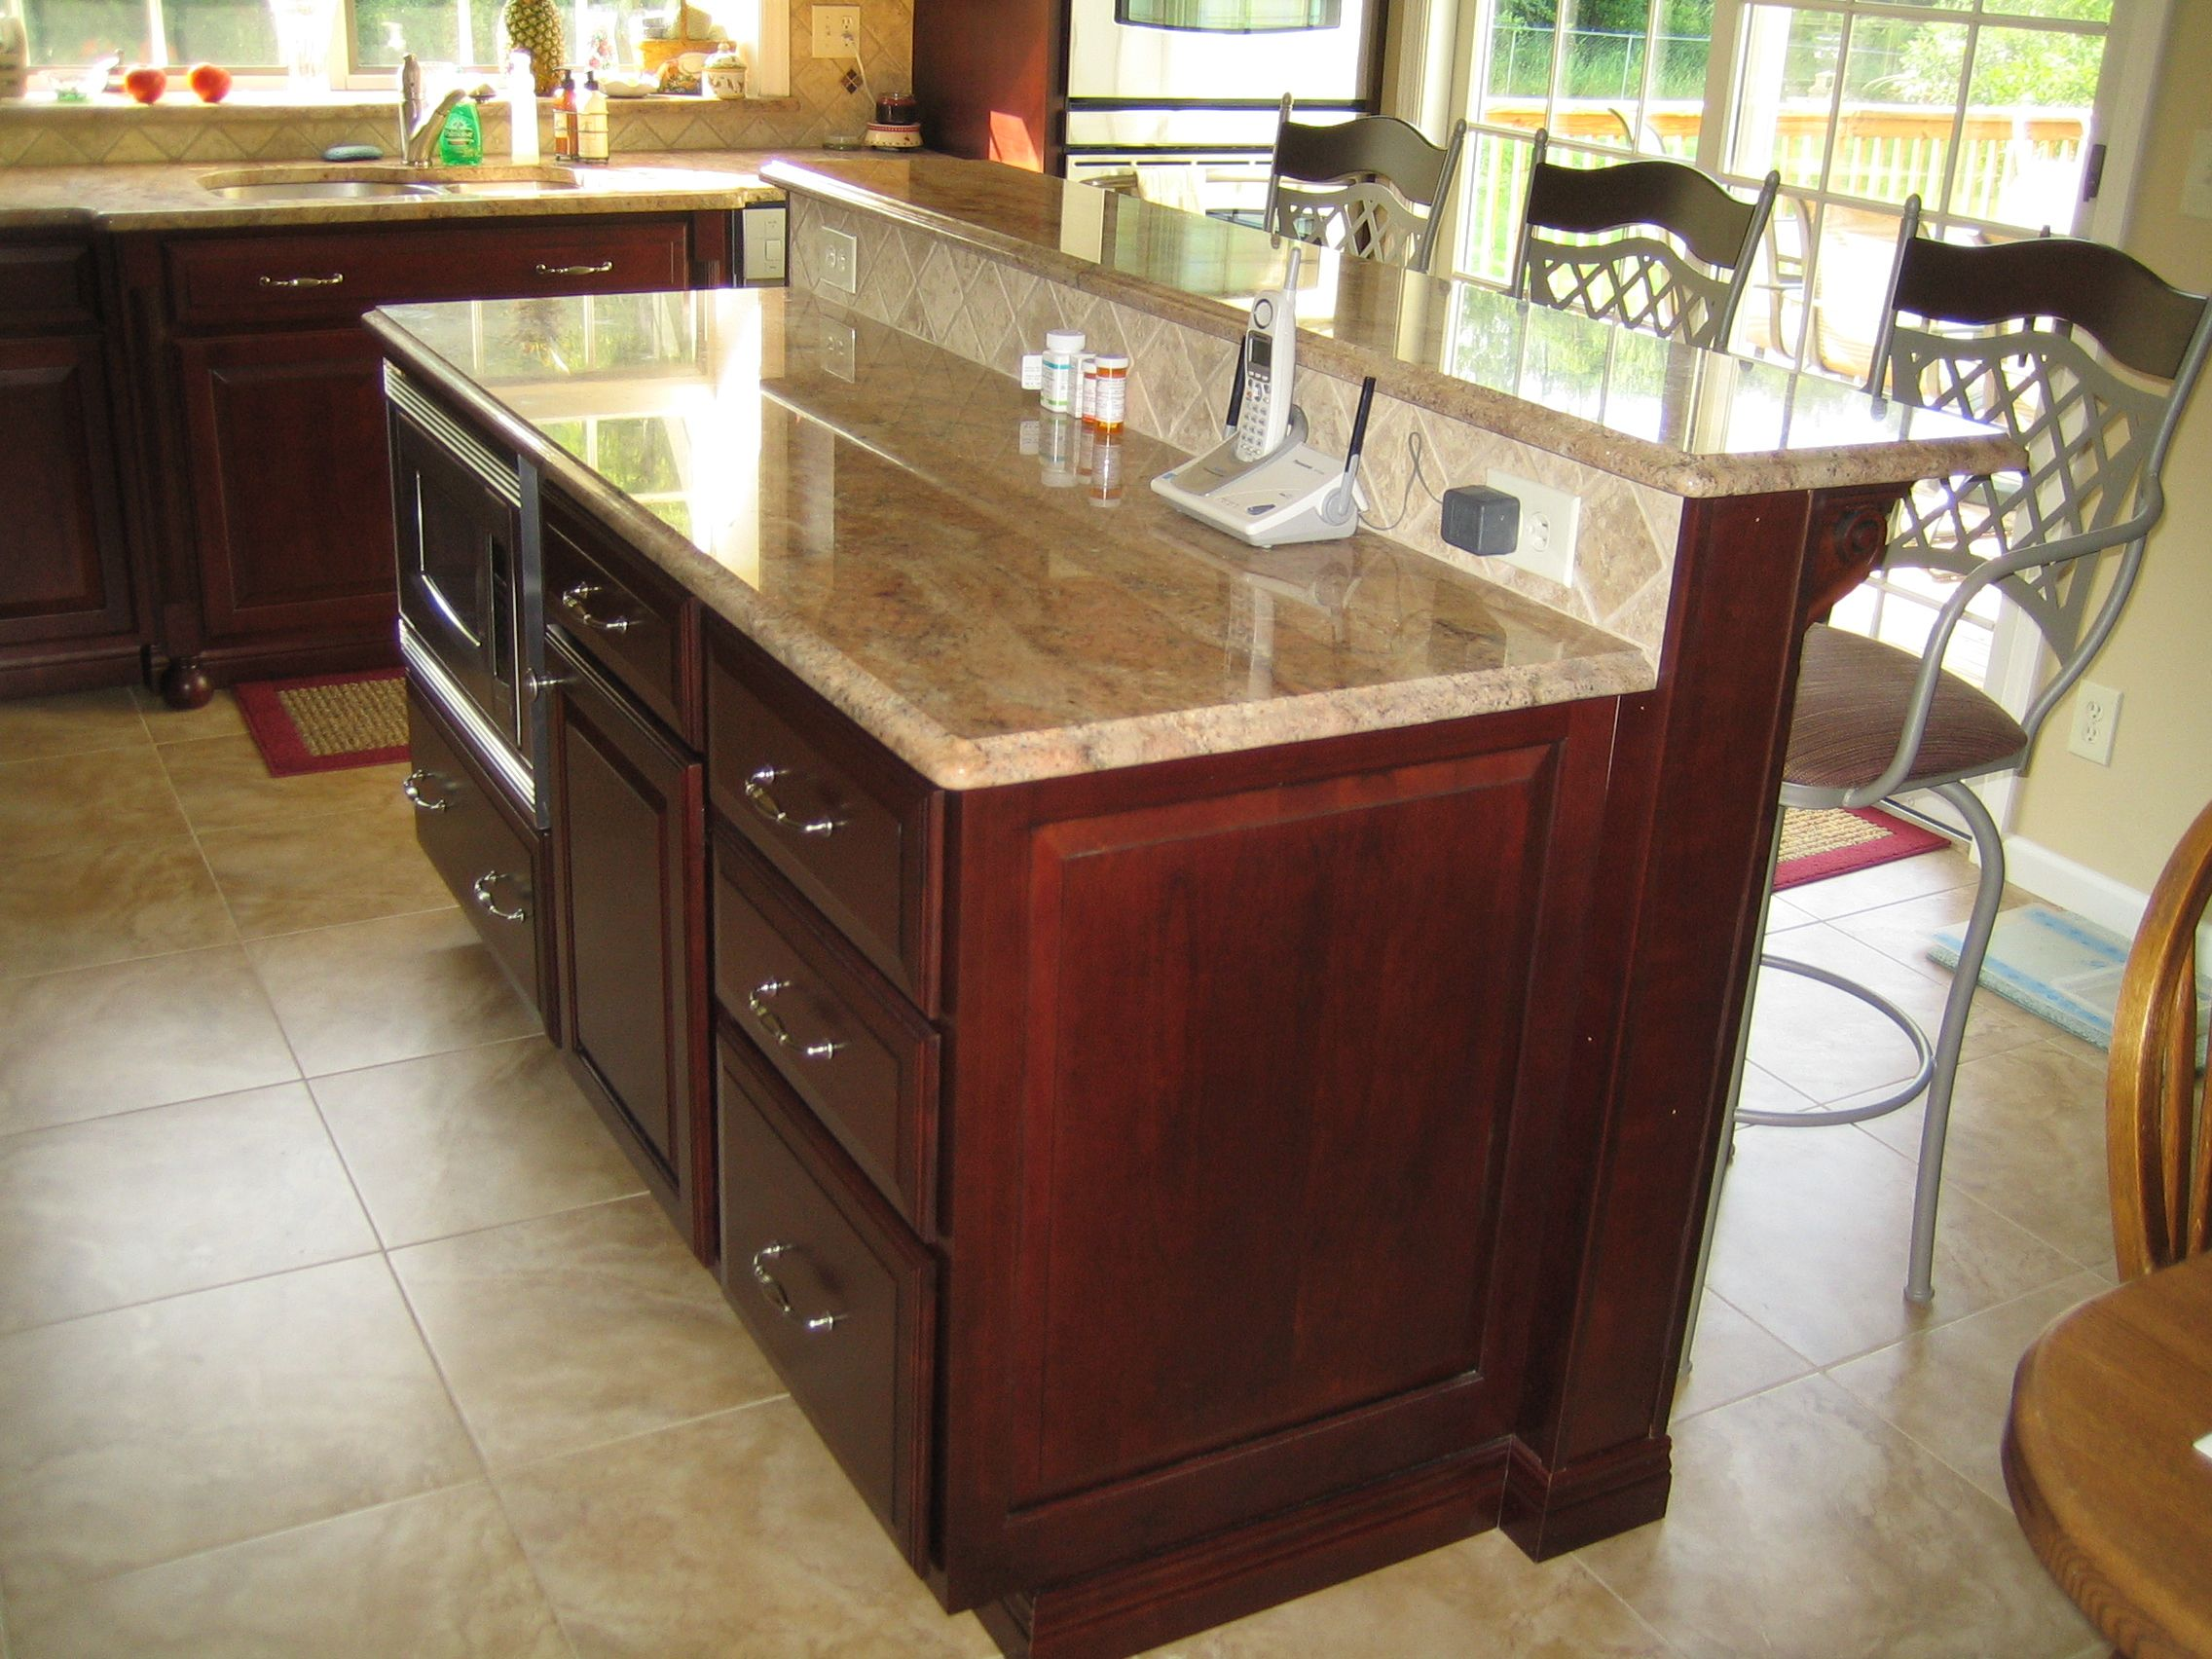 Countertop Overhang : Pin by Jenyfur Drainy on For the Home Pinterest